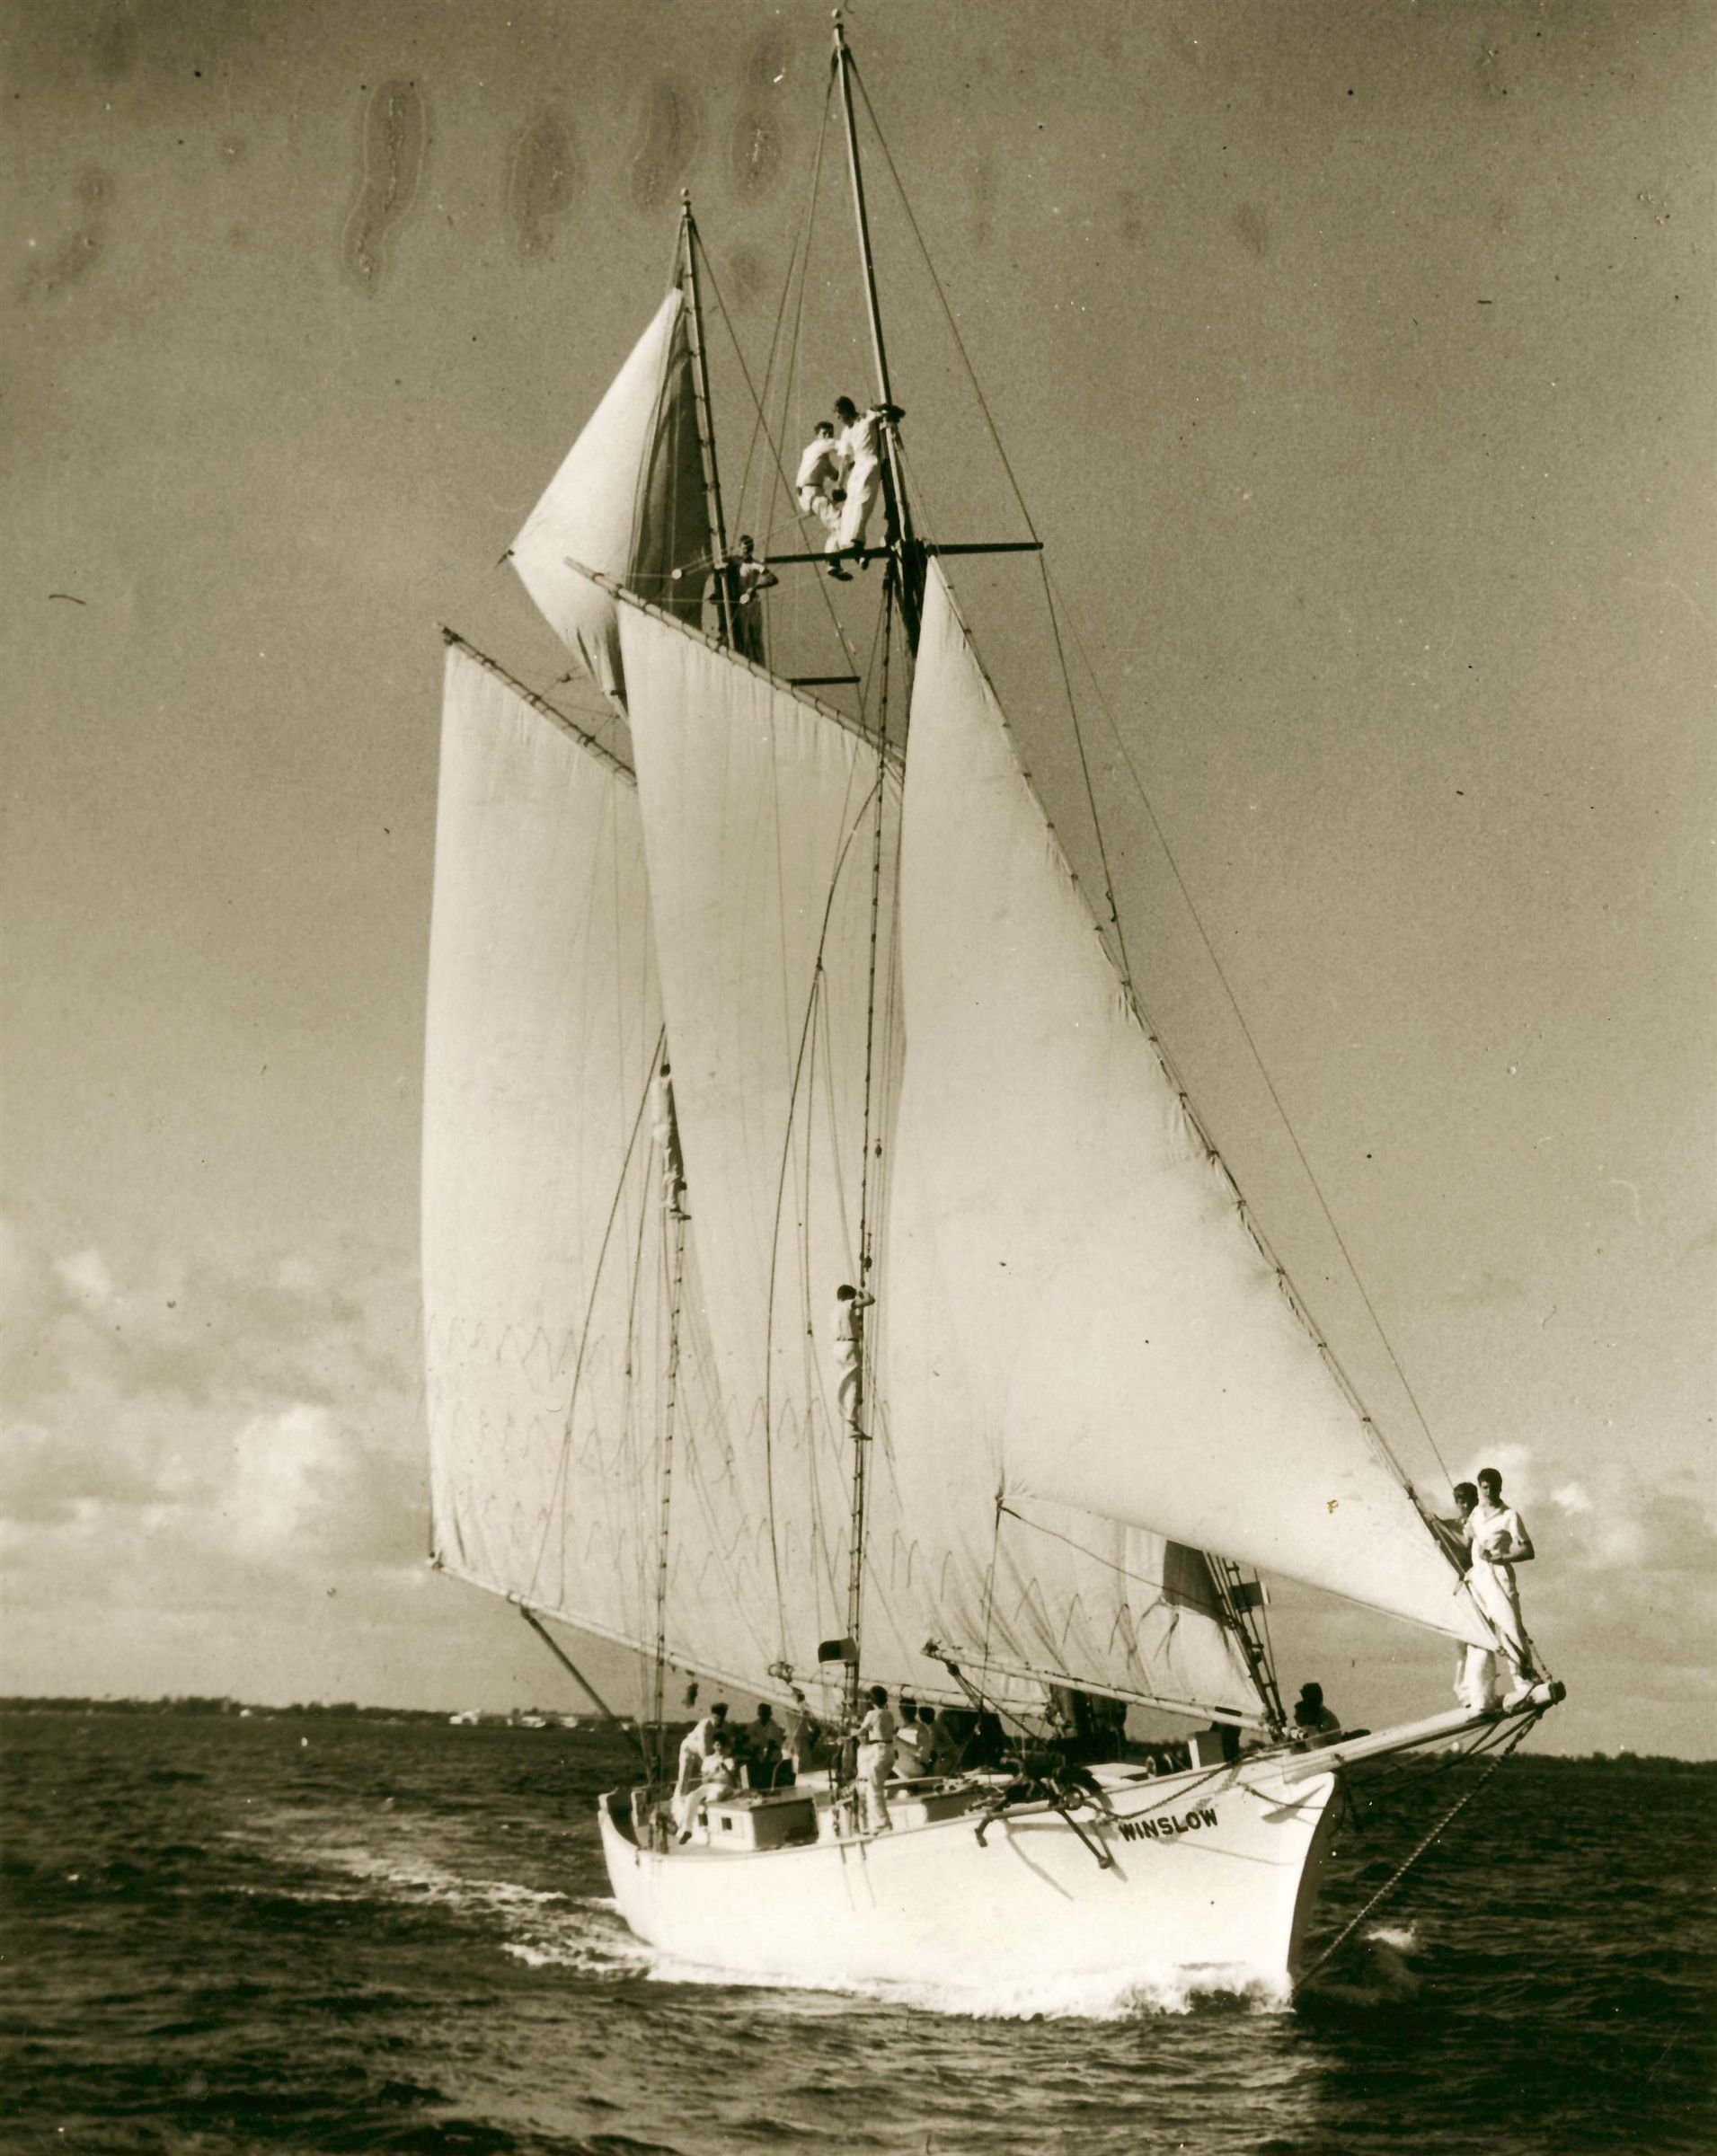 Winslow at sea with boys 1930's